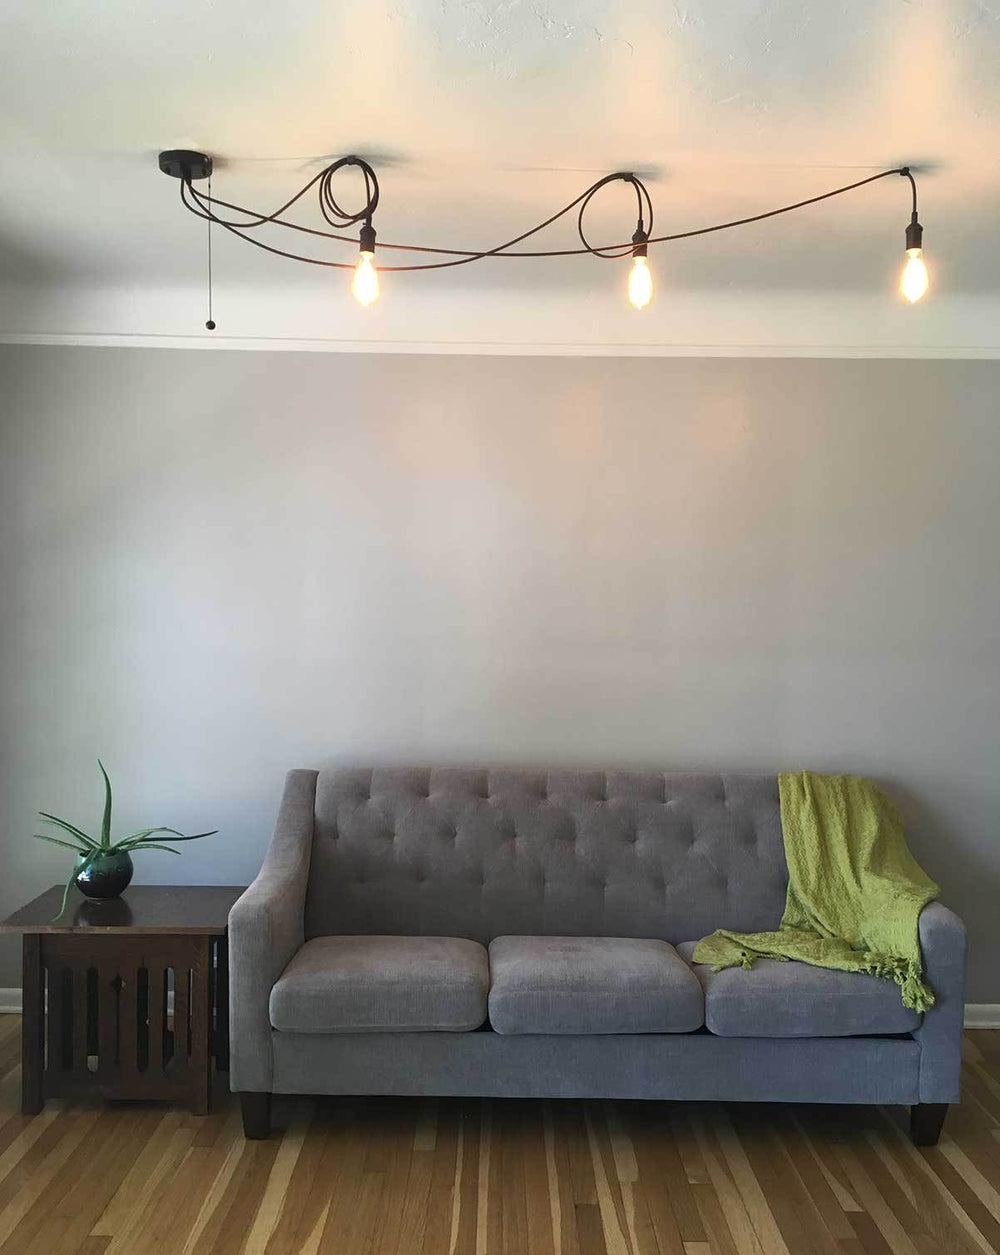 cute 3 pendant swag chandelier over couch